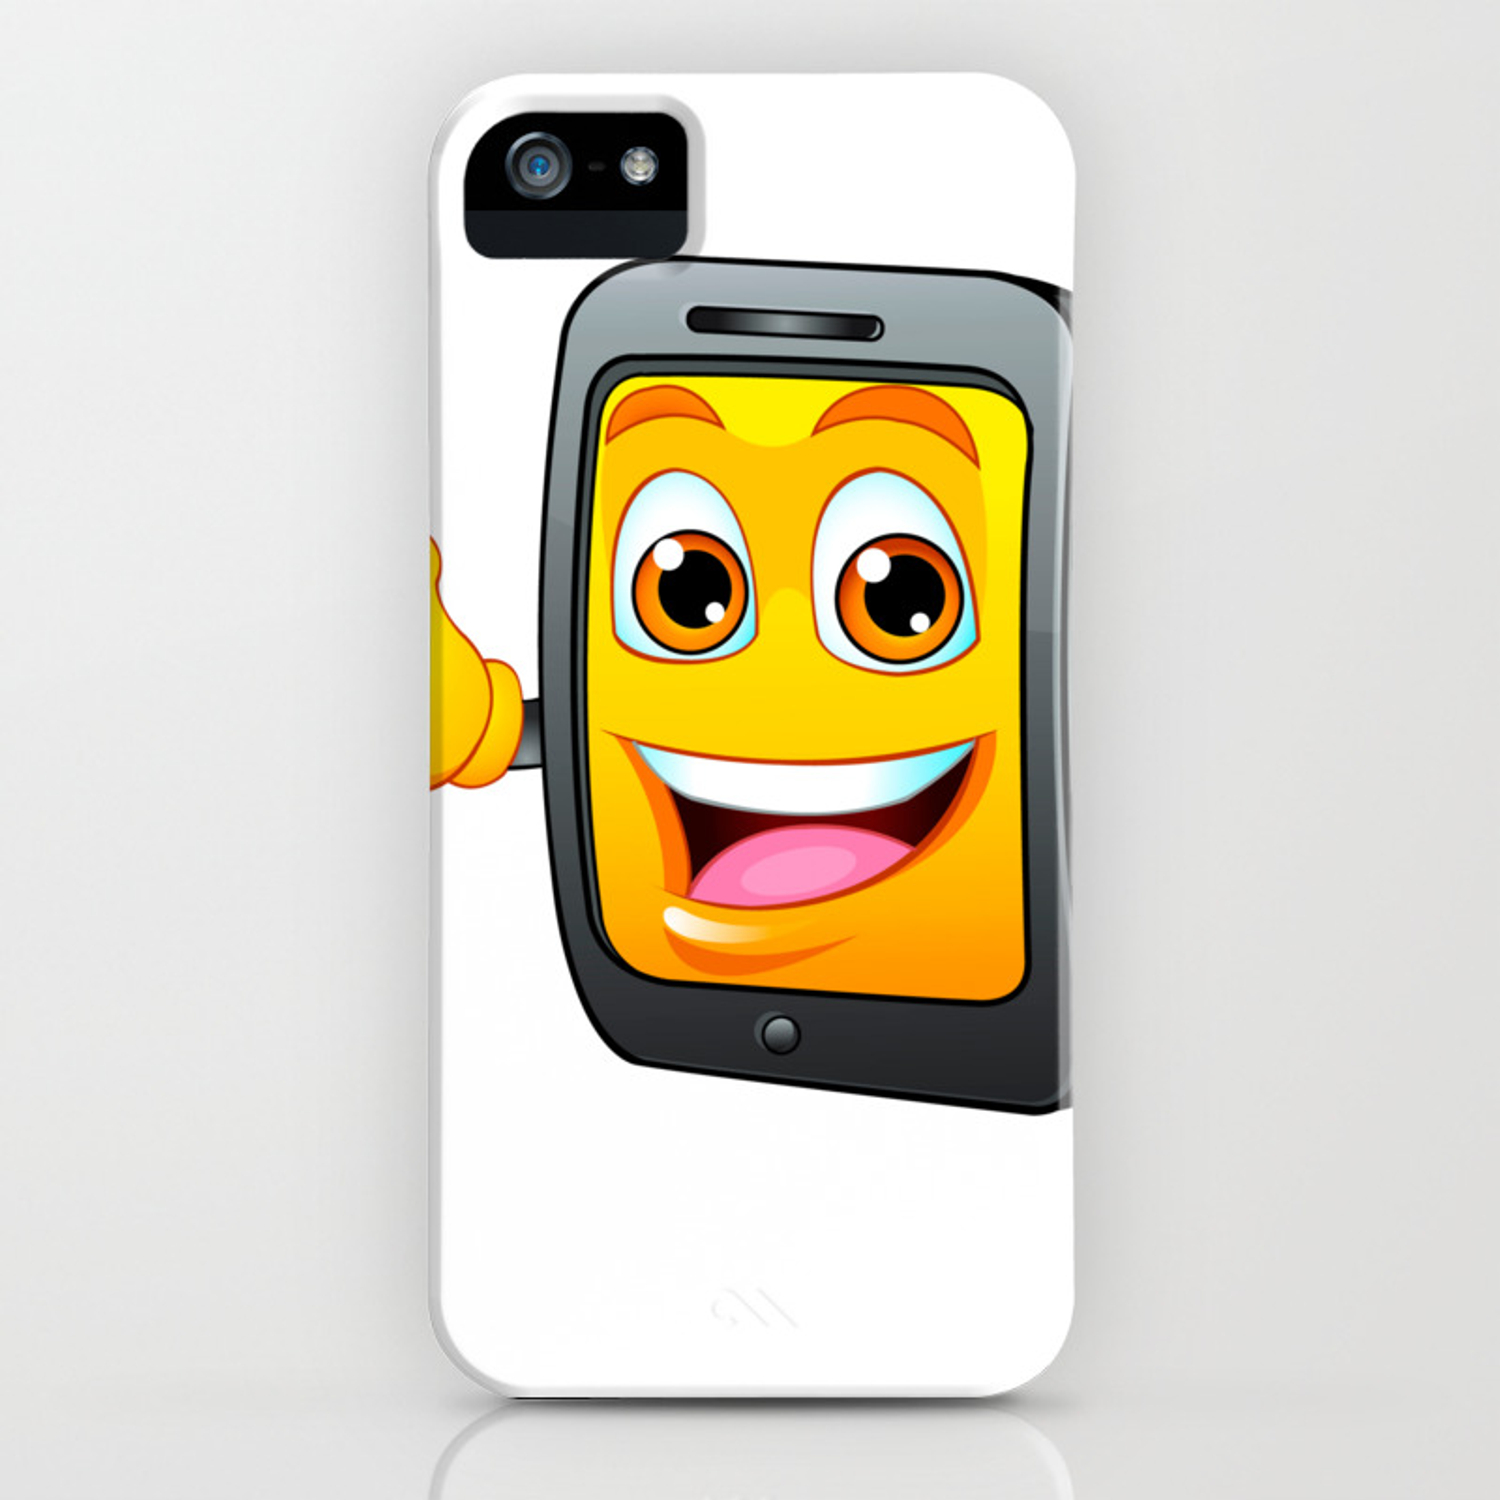 Yellow fun mobile phone cartoon with blue price tag dollar sign iPhone Case